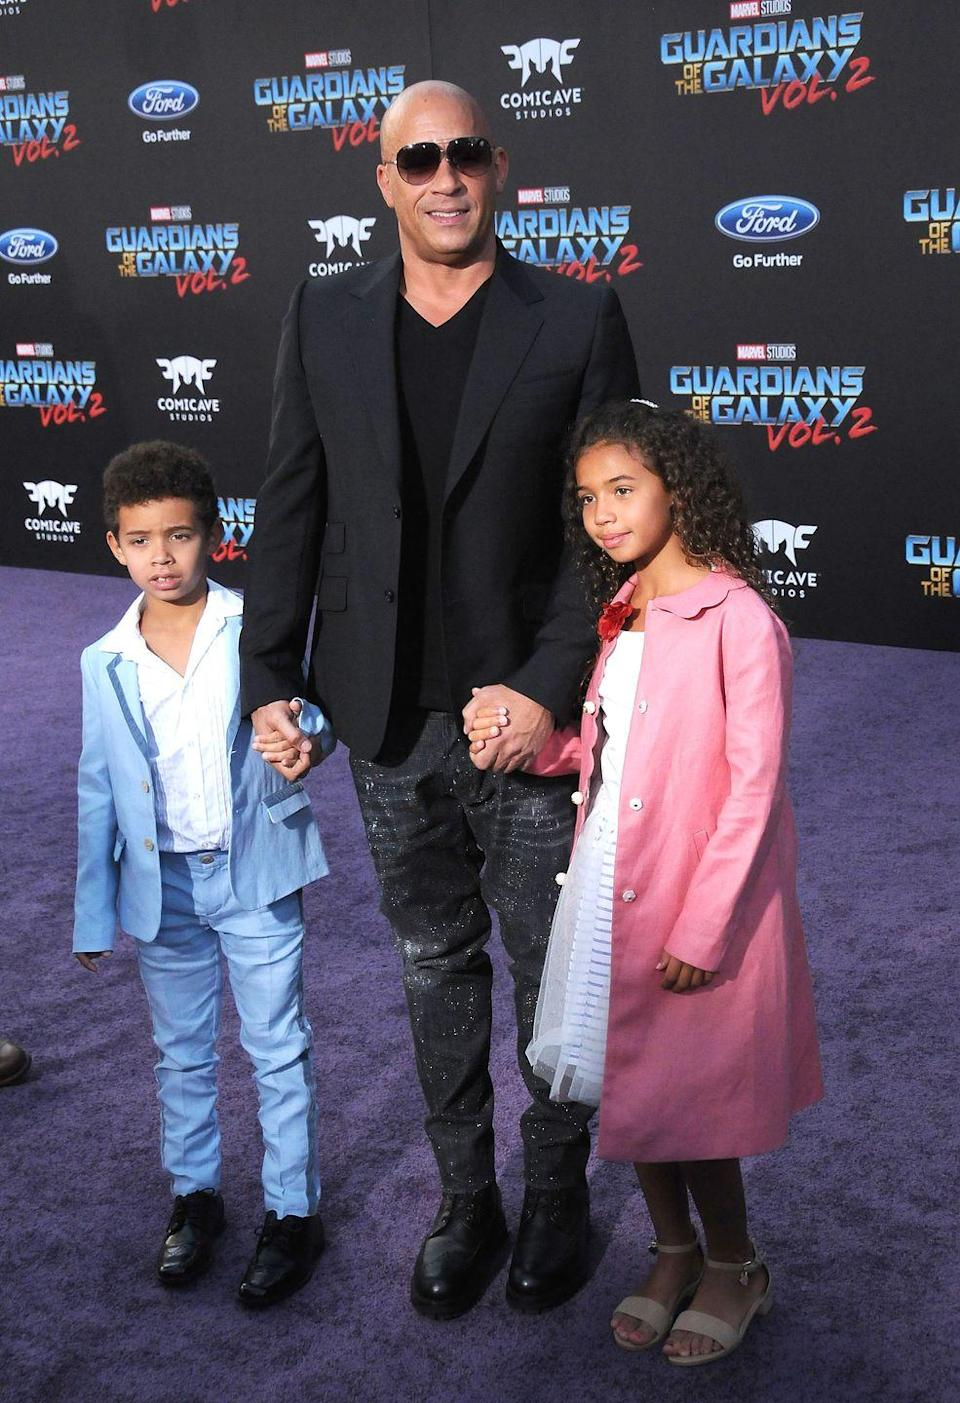 """<p>You might be surprised to find out that Vin Disel has not one, not two, but three kids with his partner Paloma Jiménez. Their names are Hania, Vincent, and Pauline—and the youngest, Pauline, was named for his <em>Fast and Furious</em> <a href=""""https://www.eonline.com/de/news/638442/vin-diesel-names-his-daughter-pauline-in-honor-of-his-late-fast-and-furious-co-star-paul-walker-get-the-details"""" rel=""""nofollow noopener"""" target=""""_blank"""" data-ylk=""""slk:co-star Paul Walker"""" class=""""link rapid-noclick-resp"""">co-star Paul Walker</a>. </p>"""